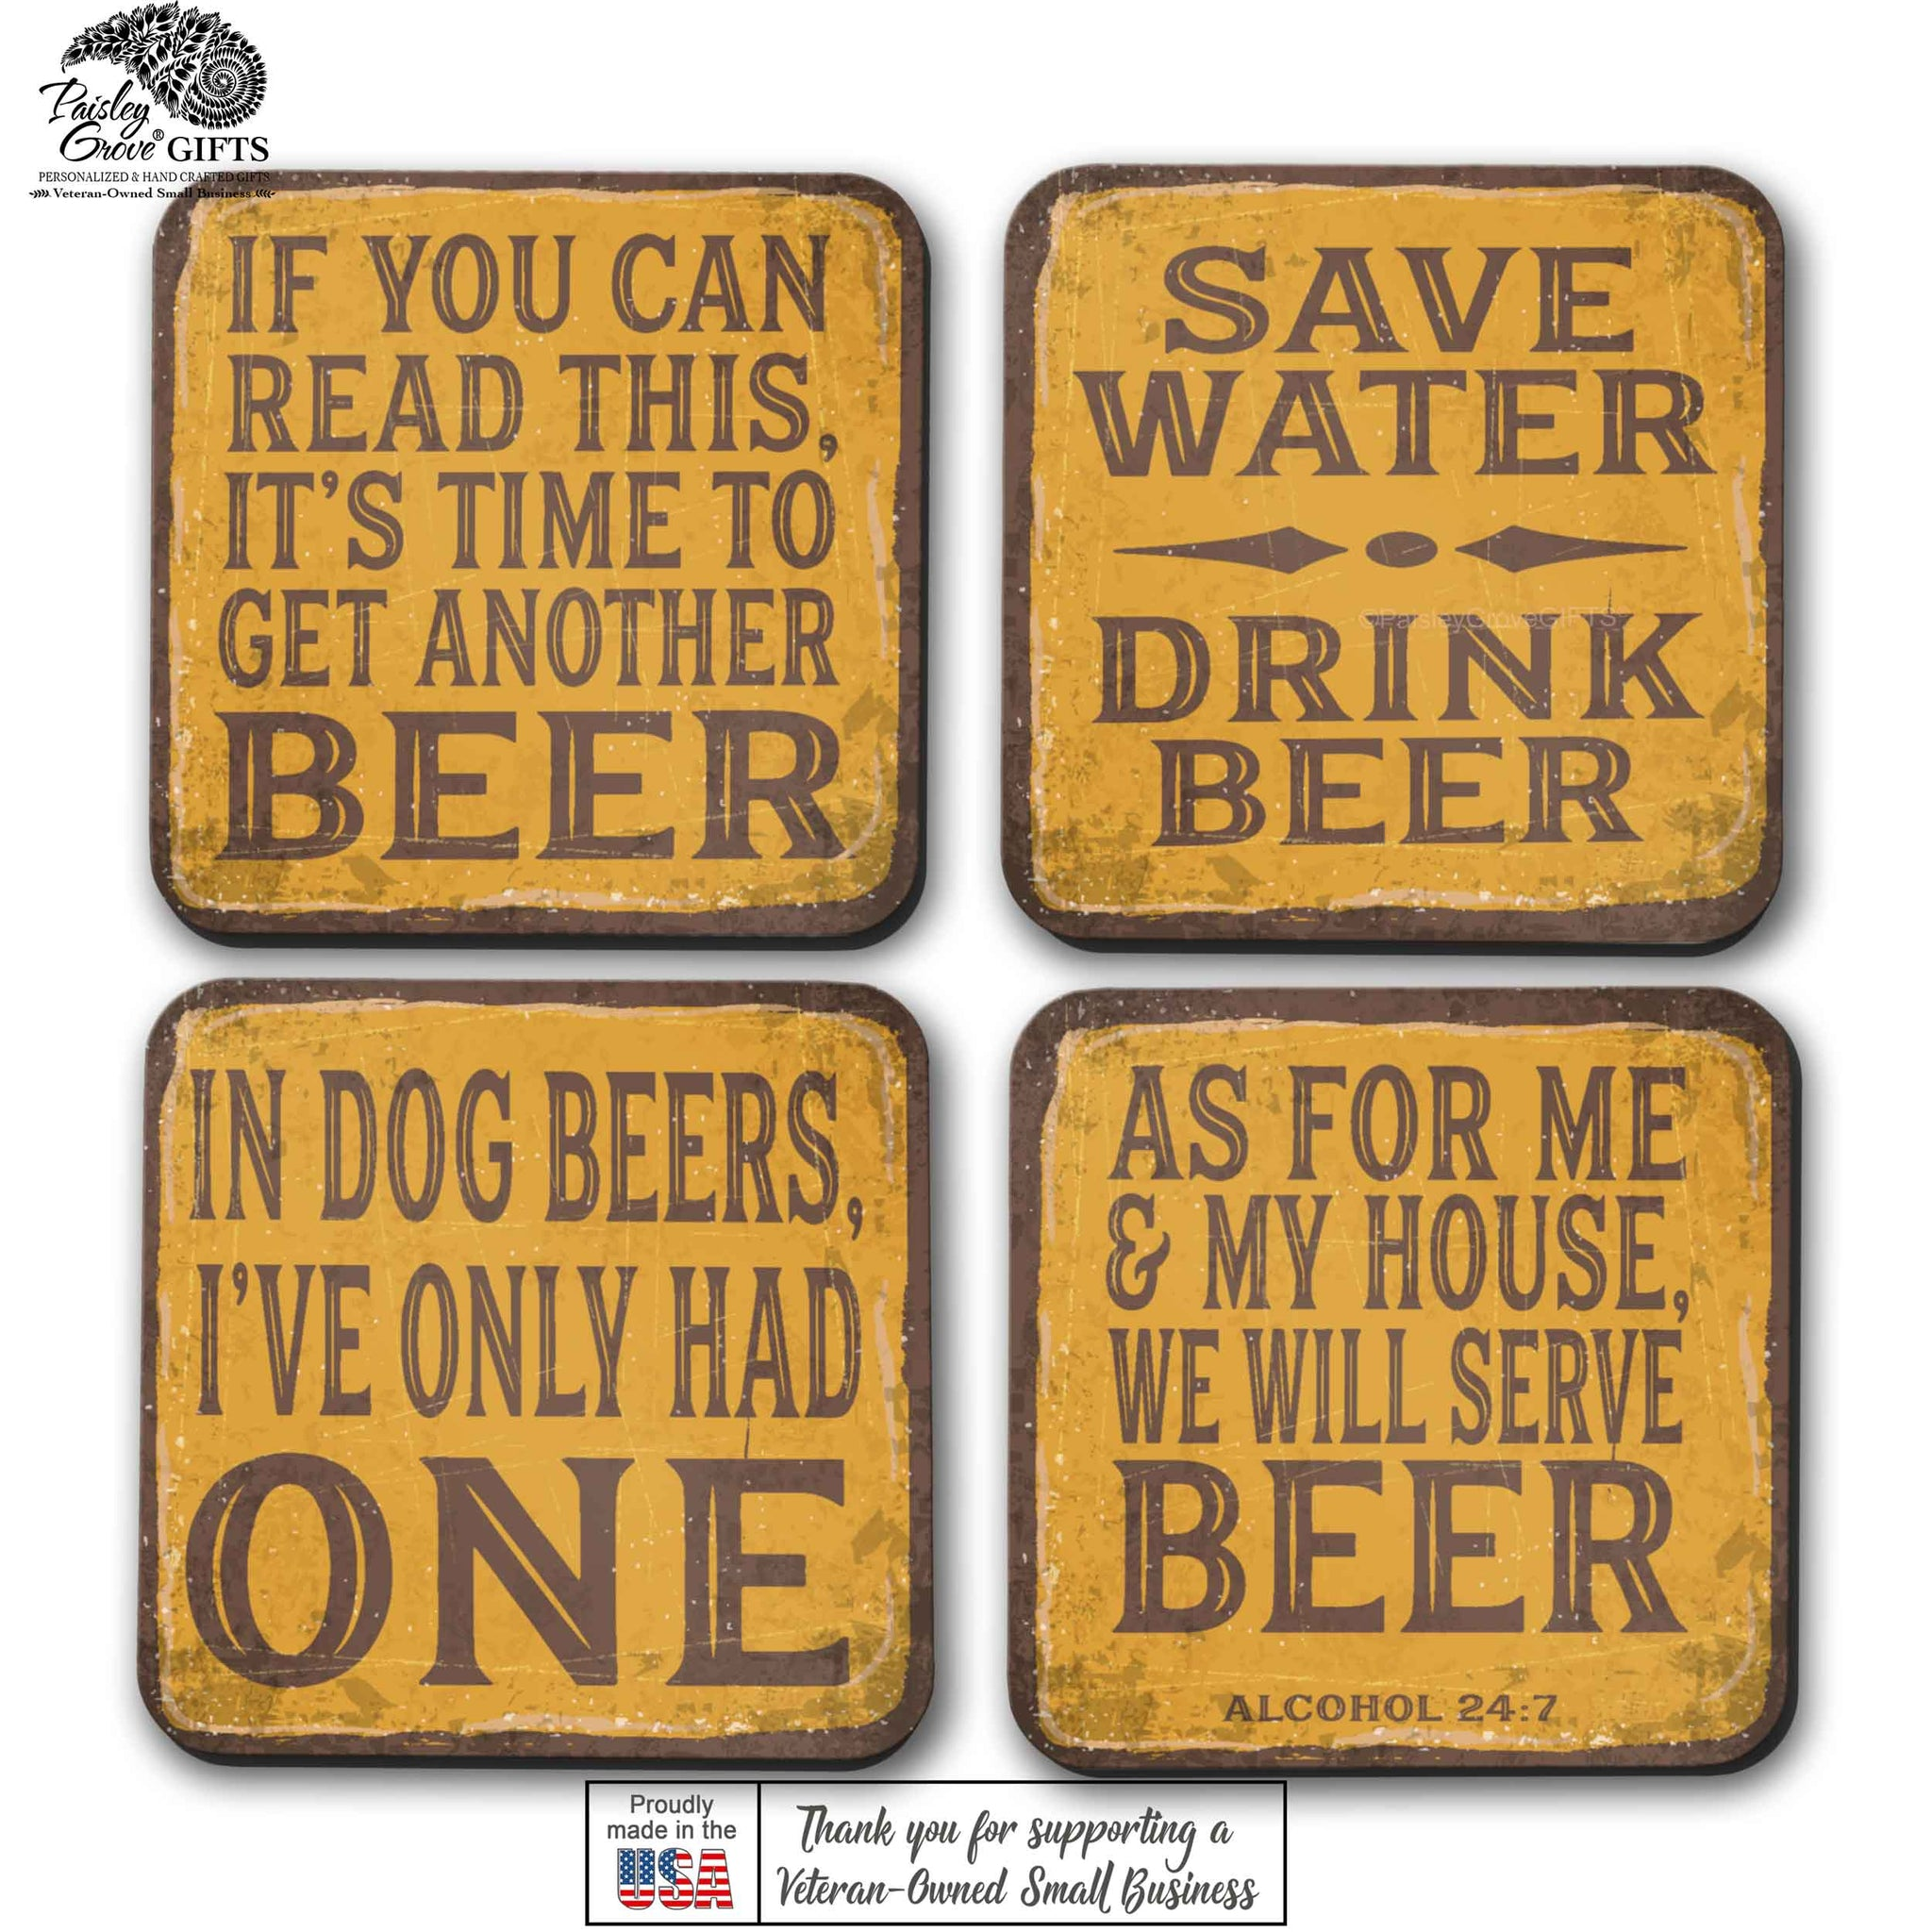 CopyrightPaisleyGroveGIFTS S700adgh funny beer coasters set for him are made in the USA